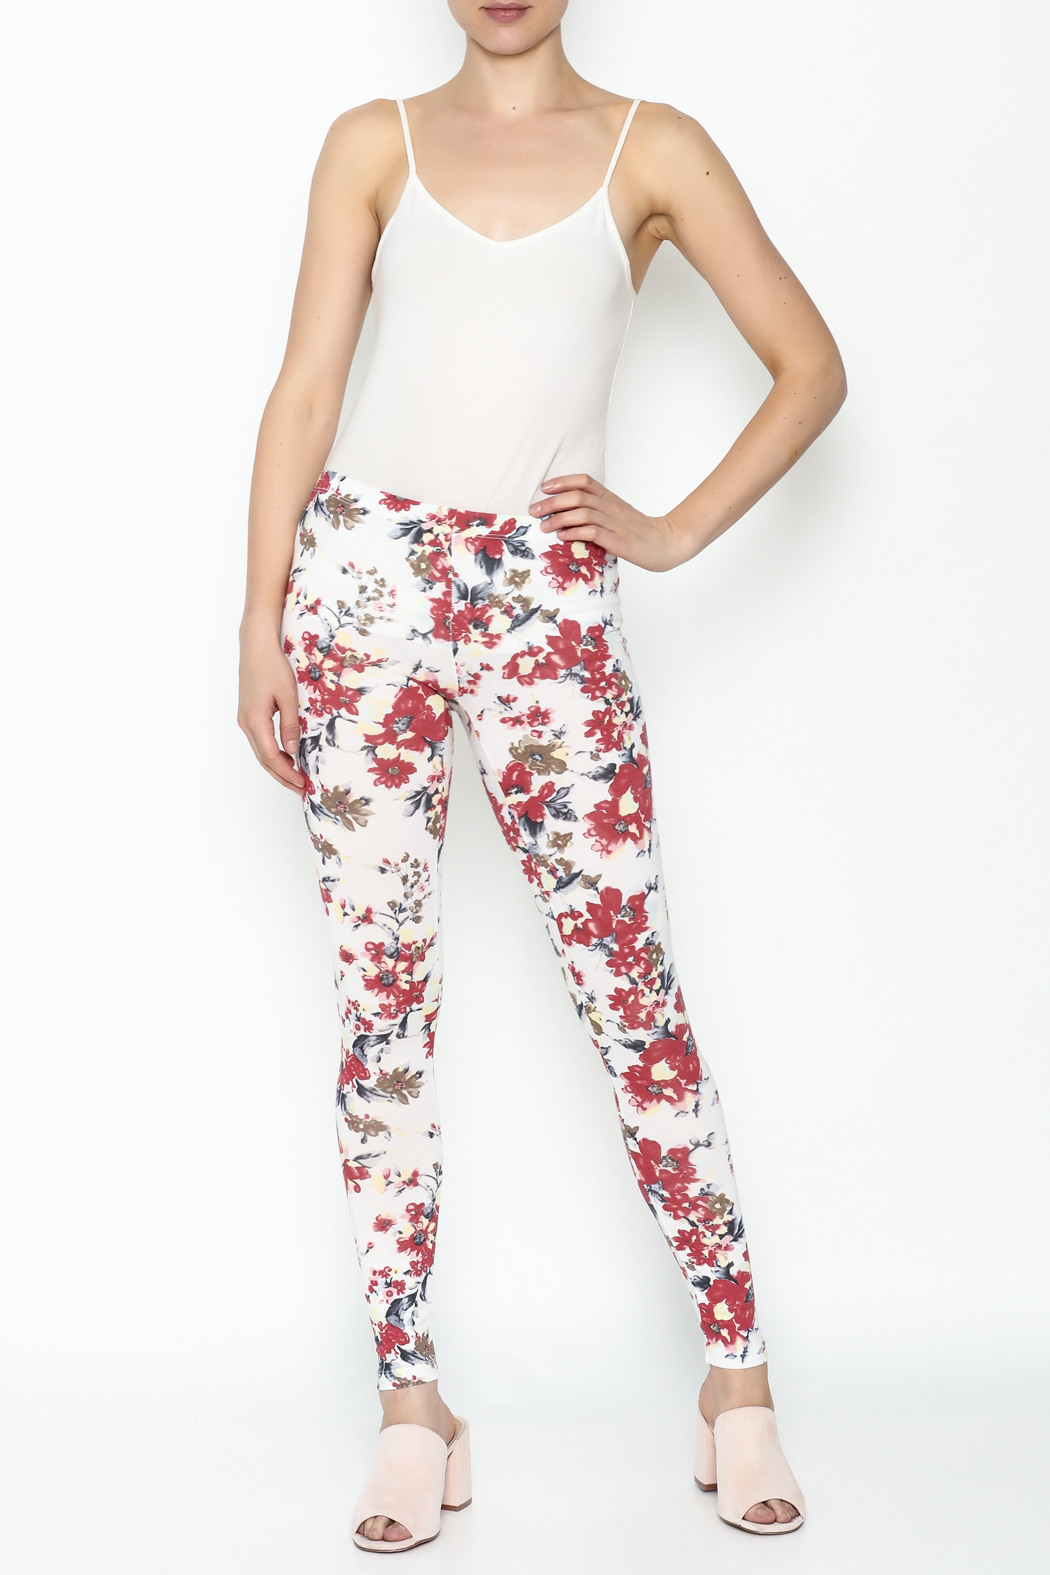 Daisy's Fashions Flower Print Leggings - Side Cropped Image